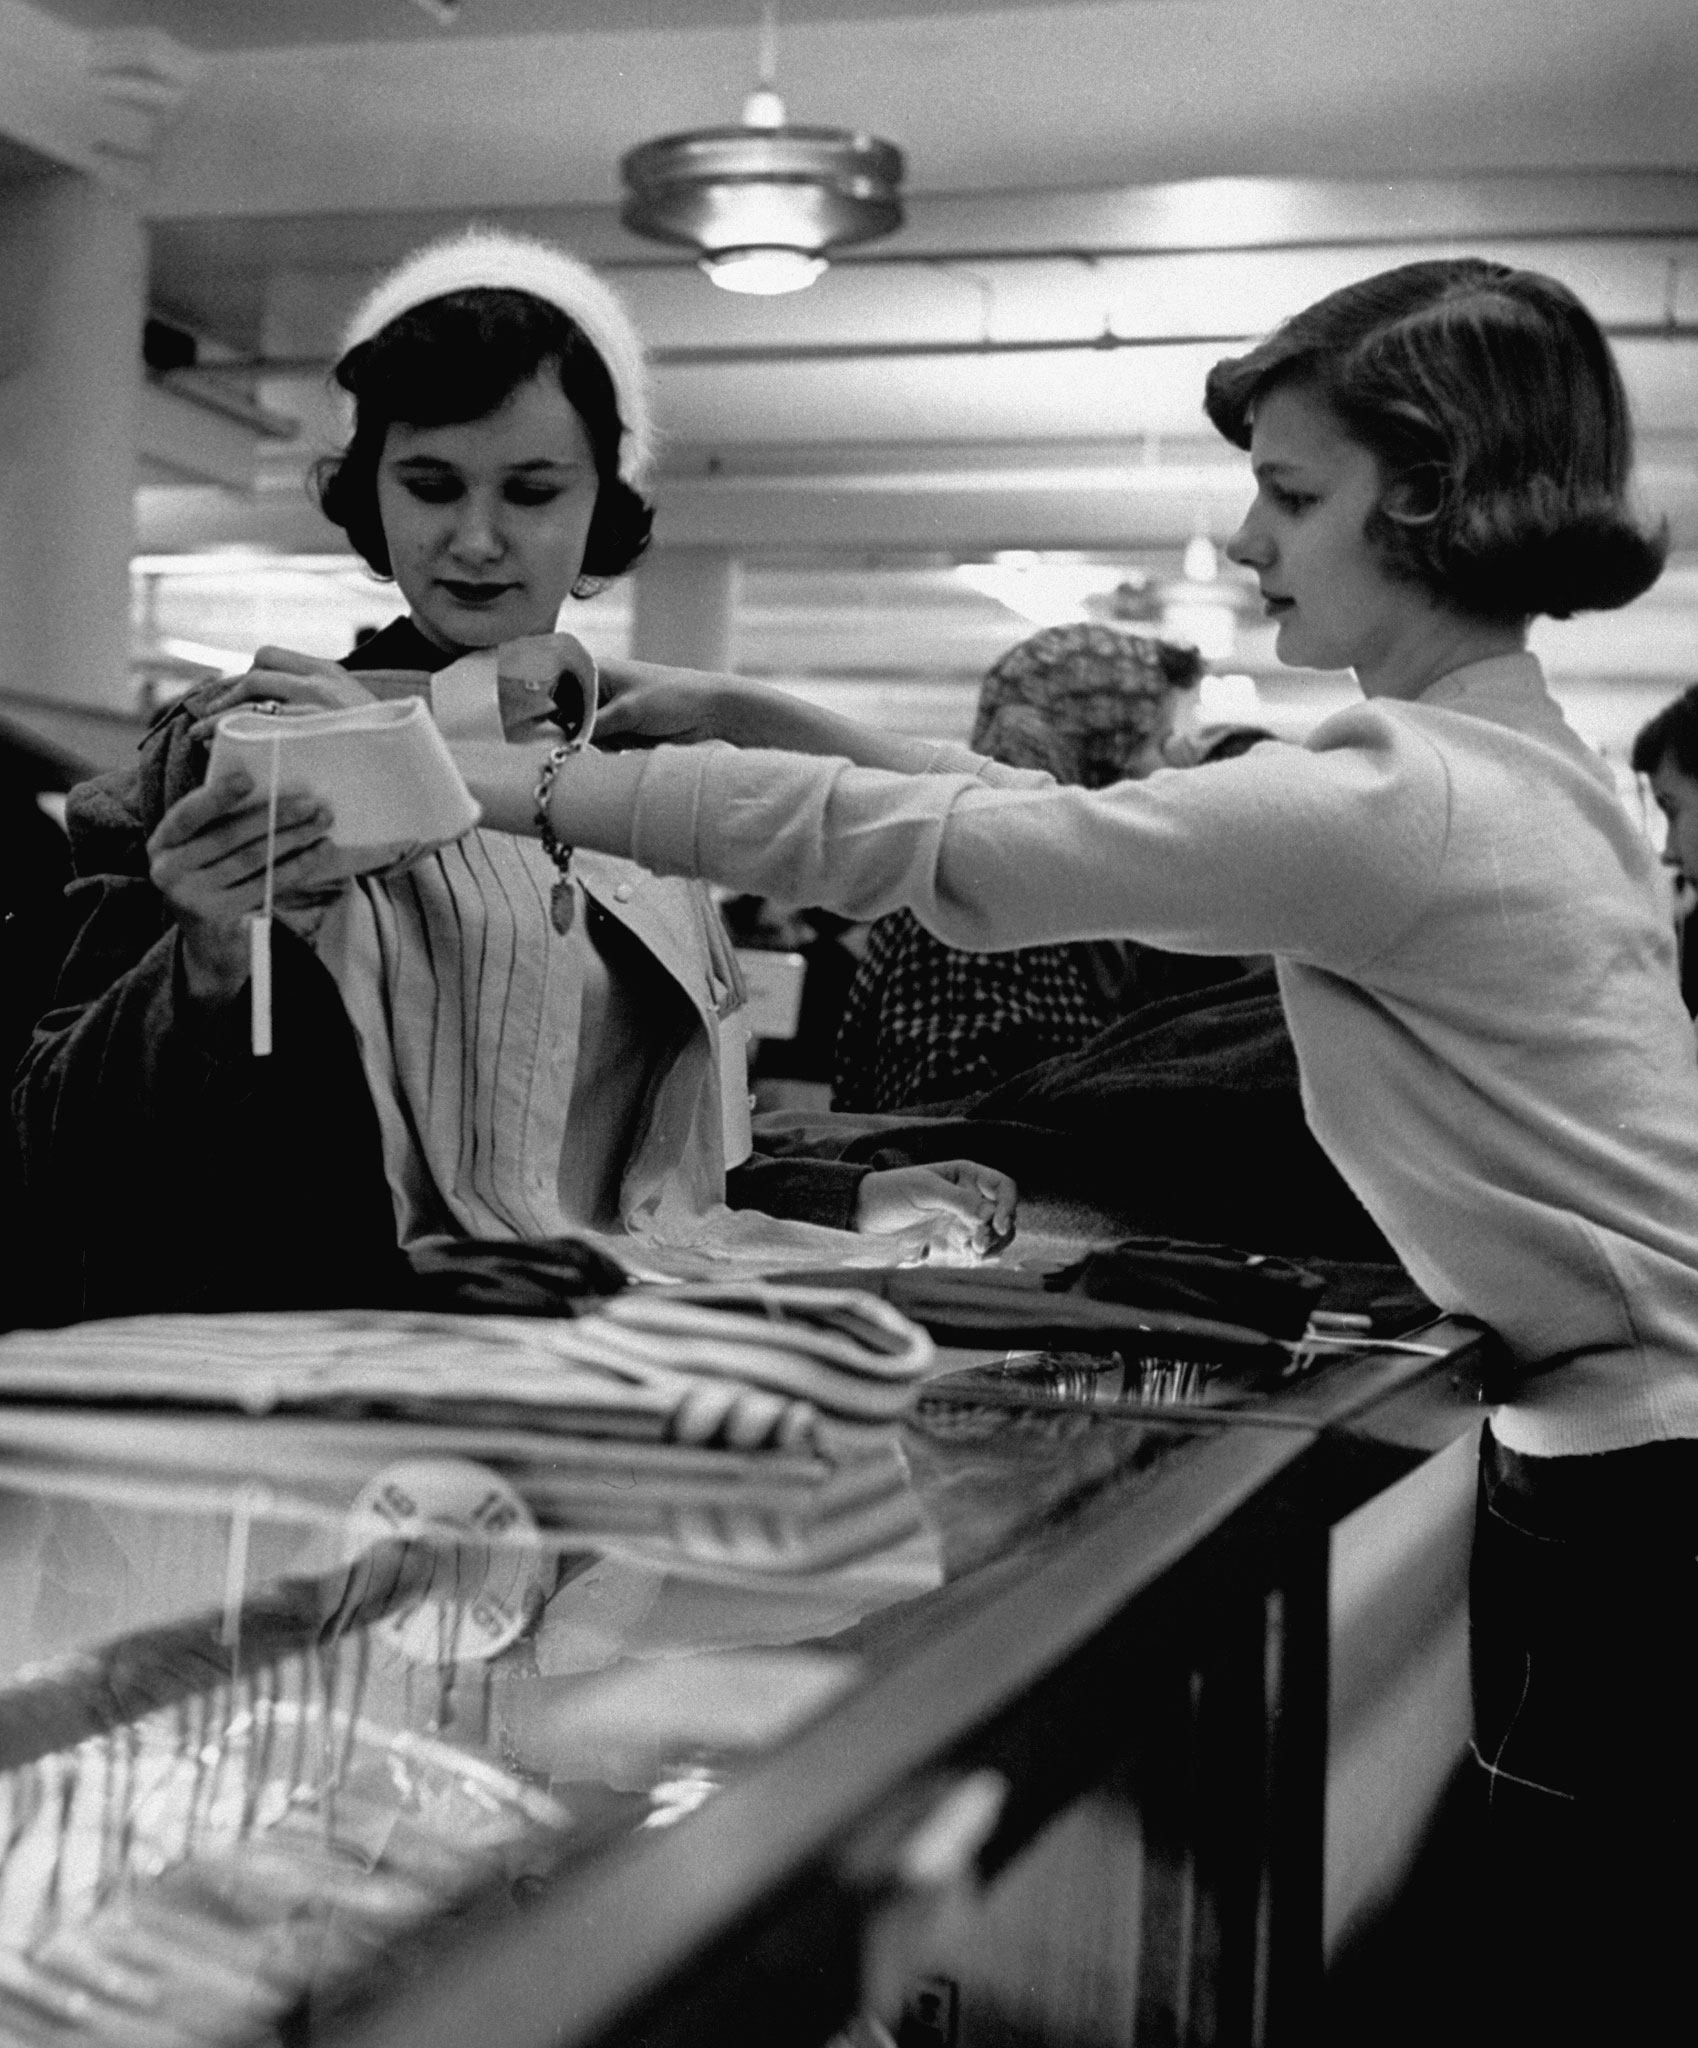 <b>Caption from LIFE.</b> Attractive young sales girl holding blouse up to customer in store, as customer is looking at other things to buy.